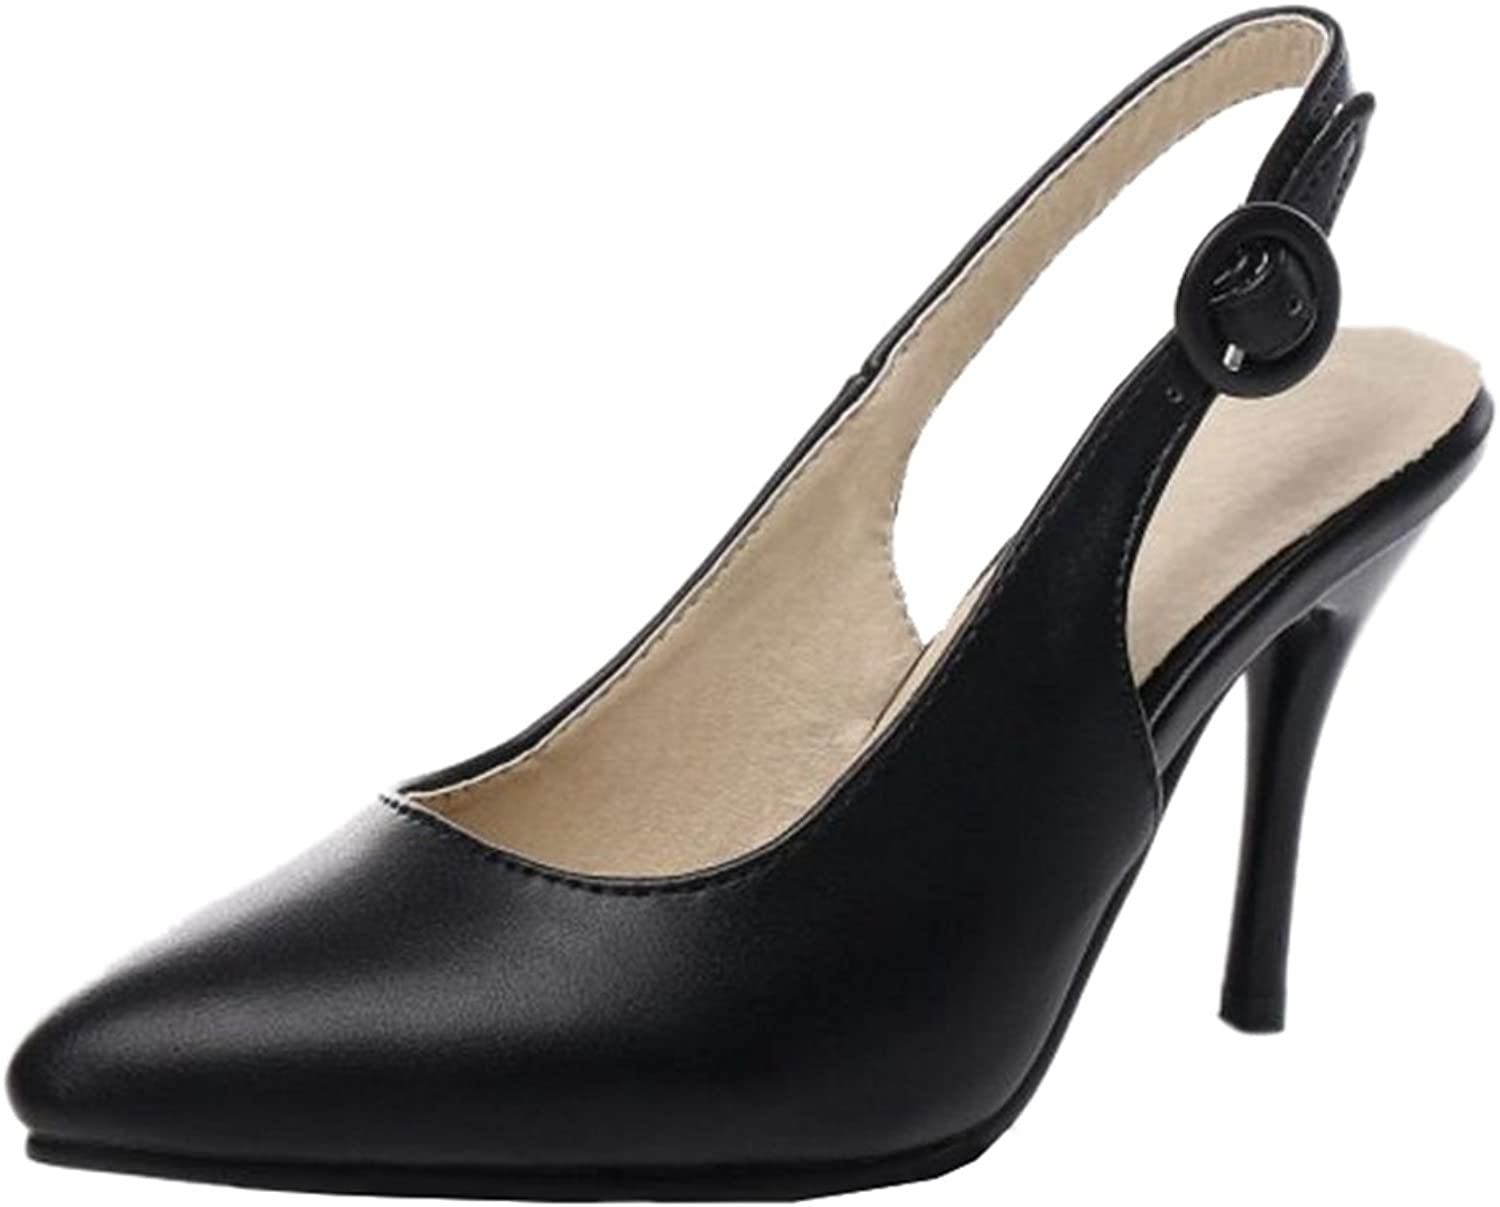 Cocey Women Court shoes with Pointed Toe and Stiletto